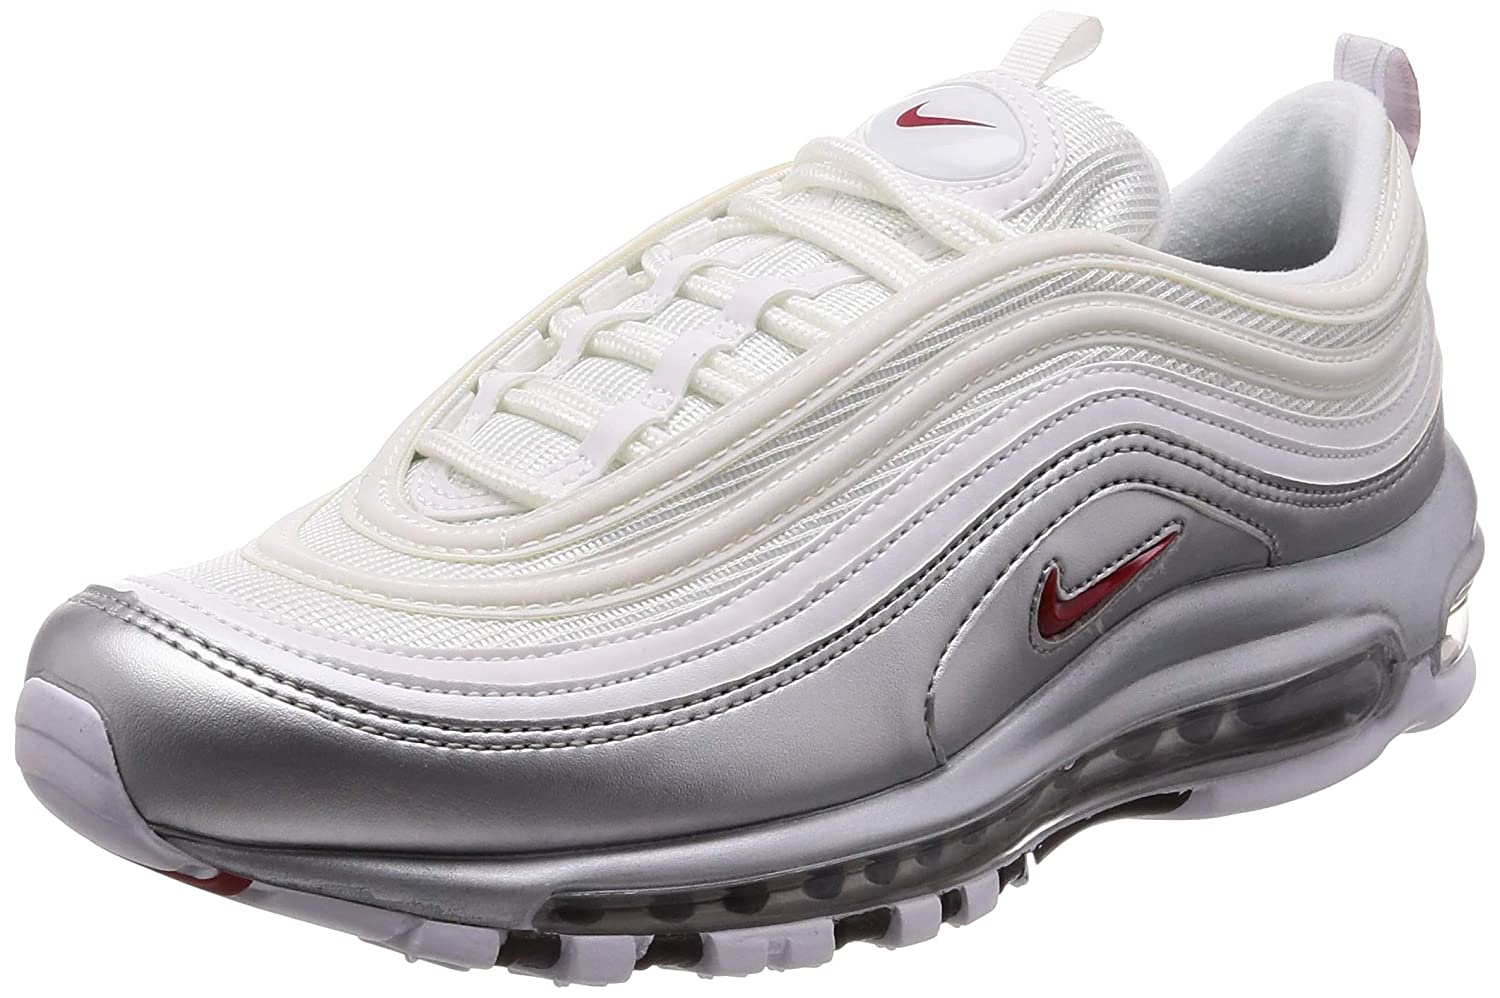 nouvelle arrivee a8de1 29dff Nike Mens Air Max 97 QS White/Varsity-Red Synthetic